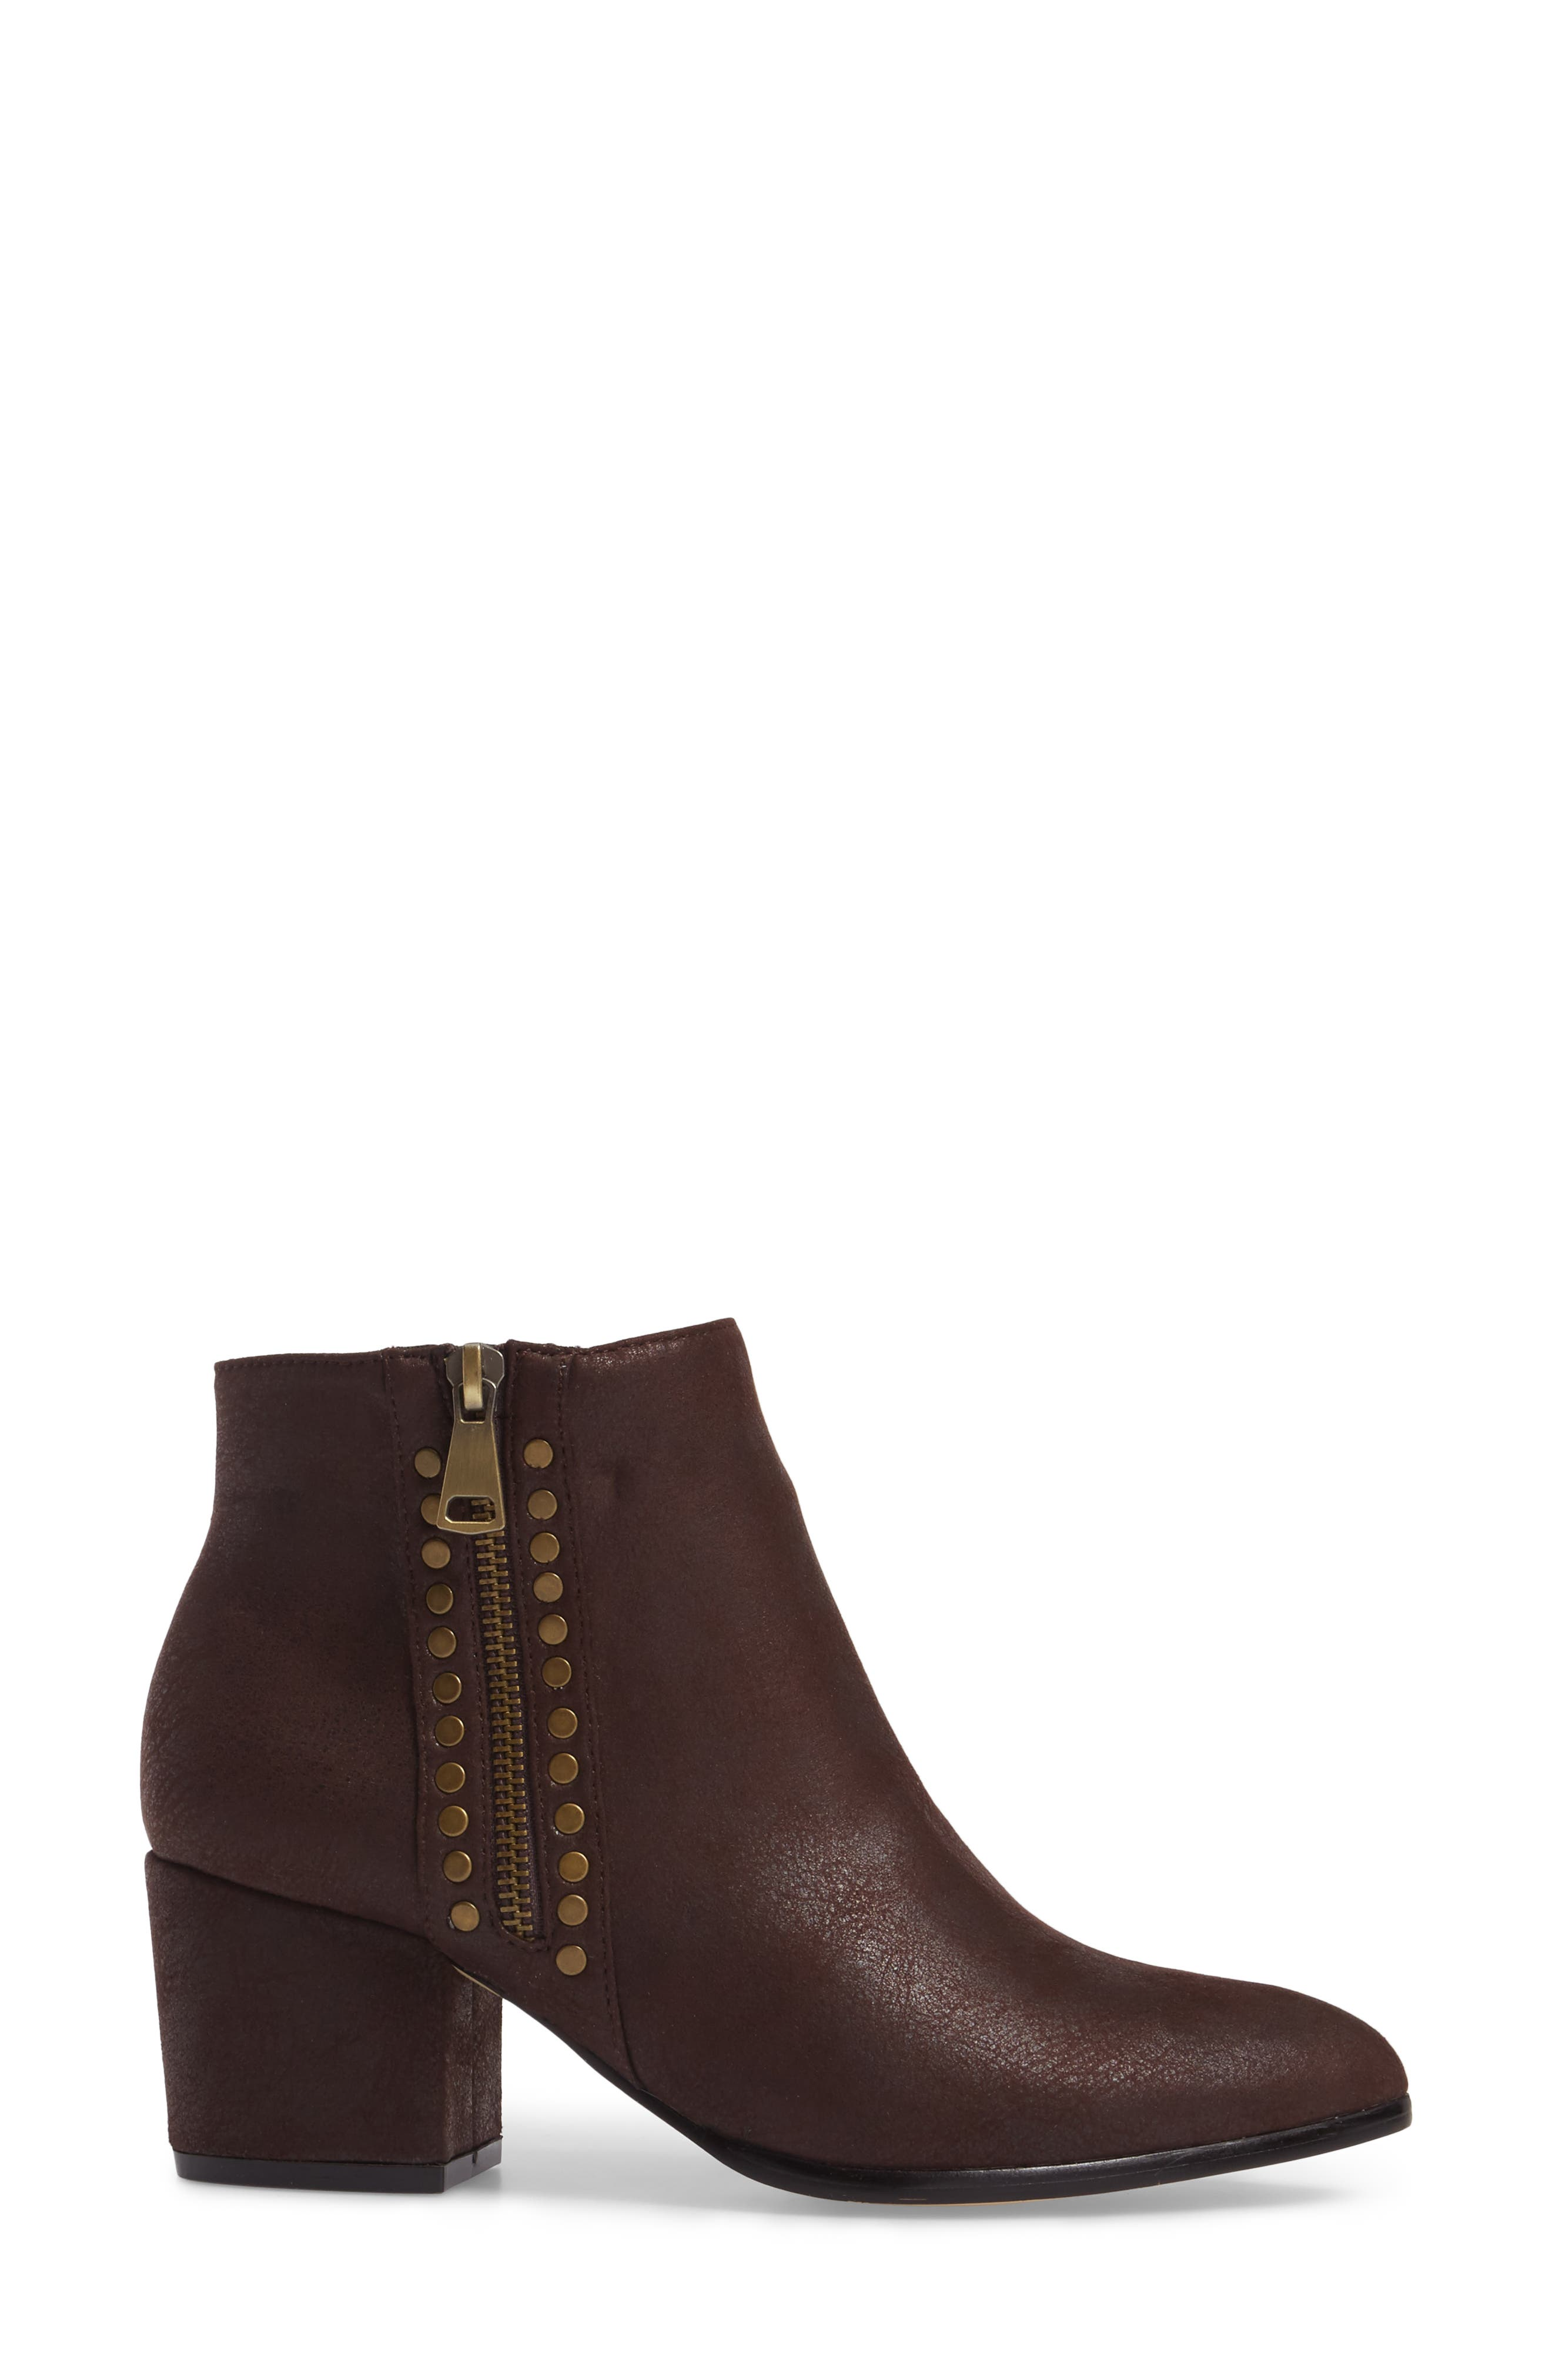 Rhythm Bootie,                             Alternate thumbnail 3, color,                             Brown